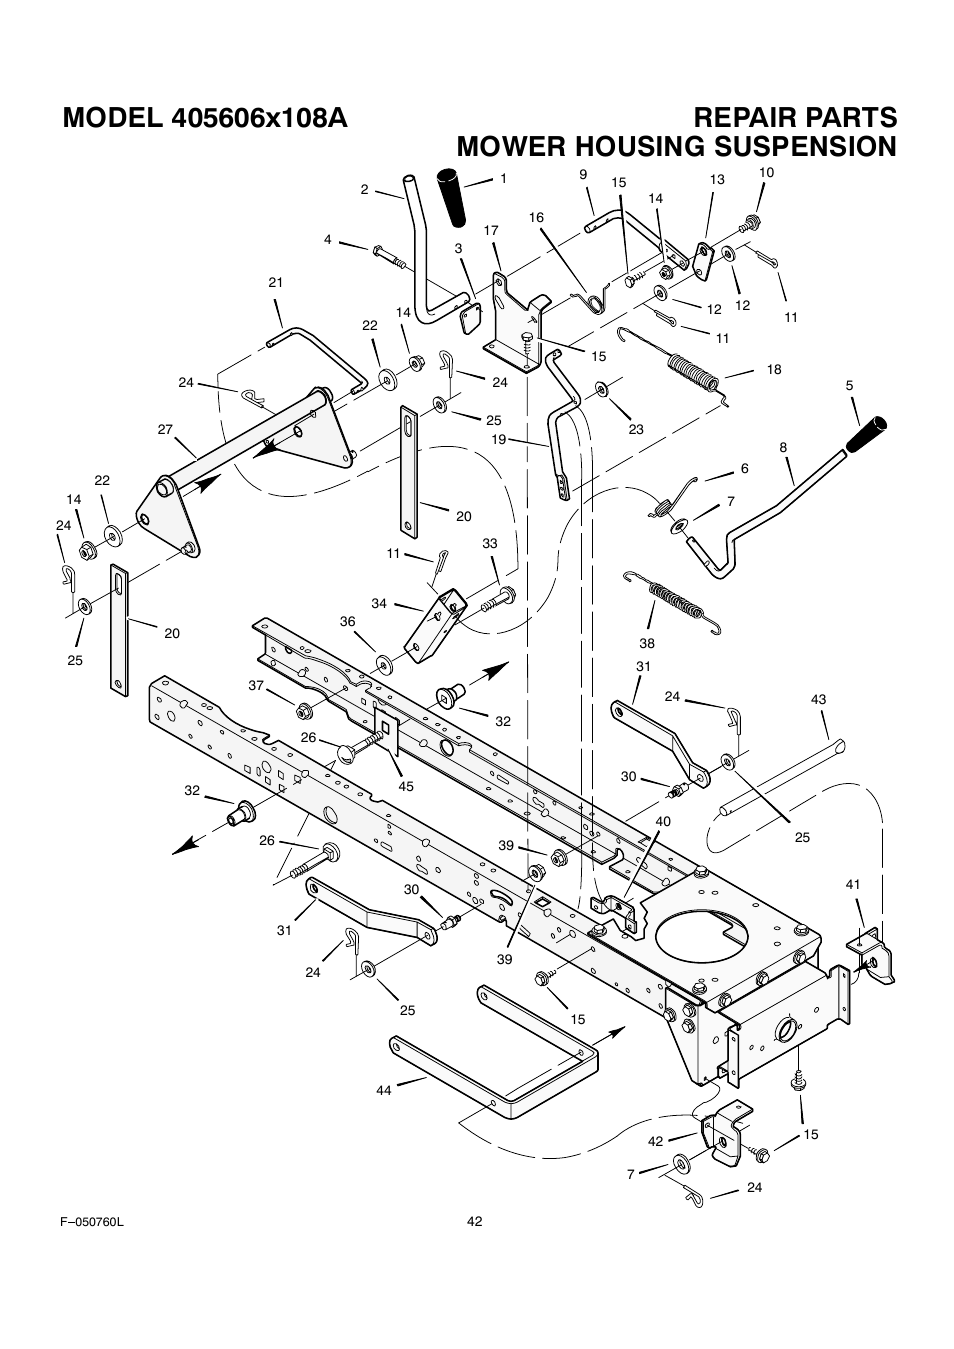 Mower housing suspension | Rover Clipper 405606x108A User Manual | Page 42  / 52